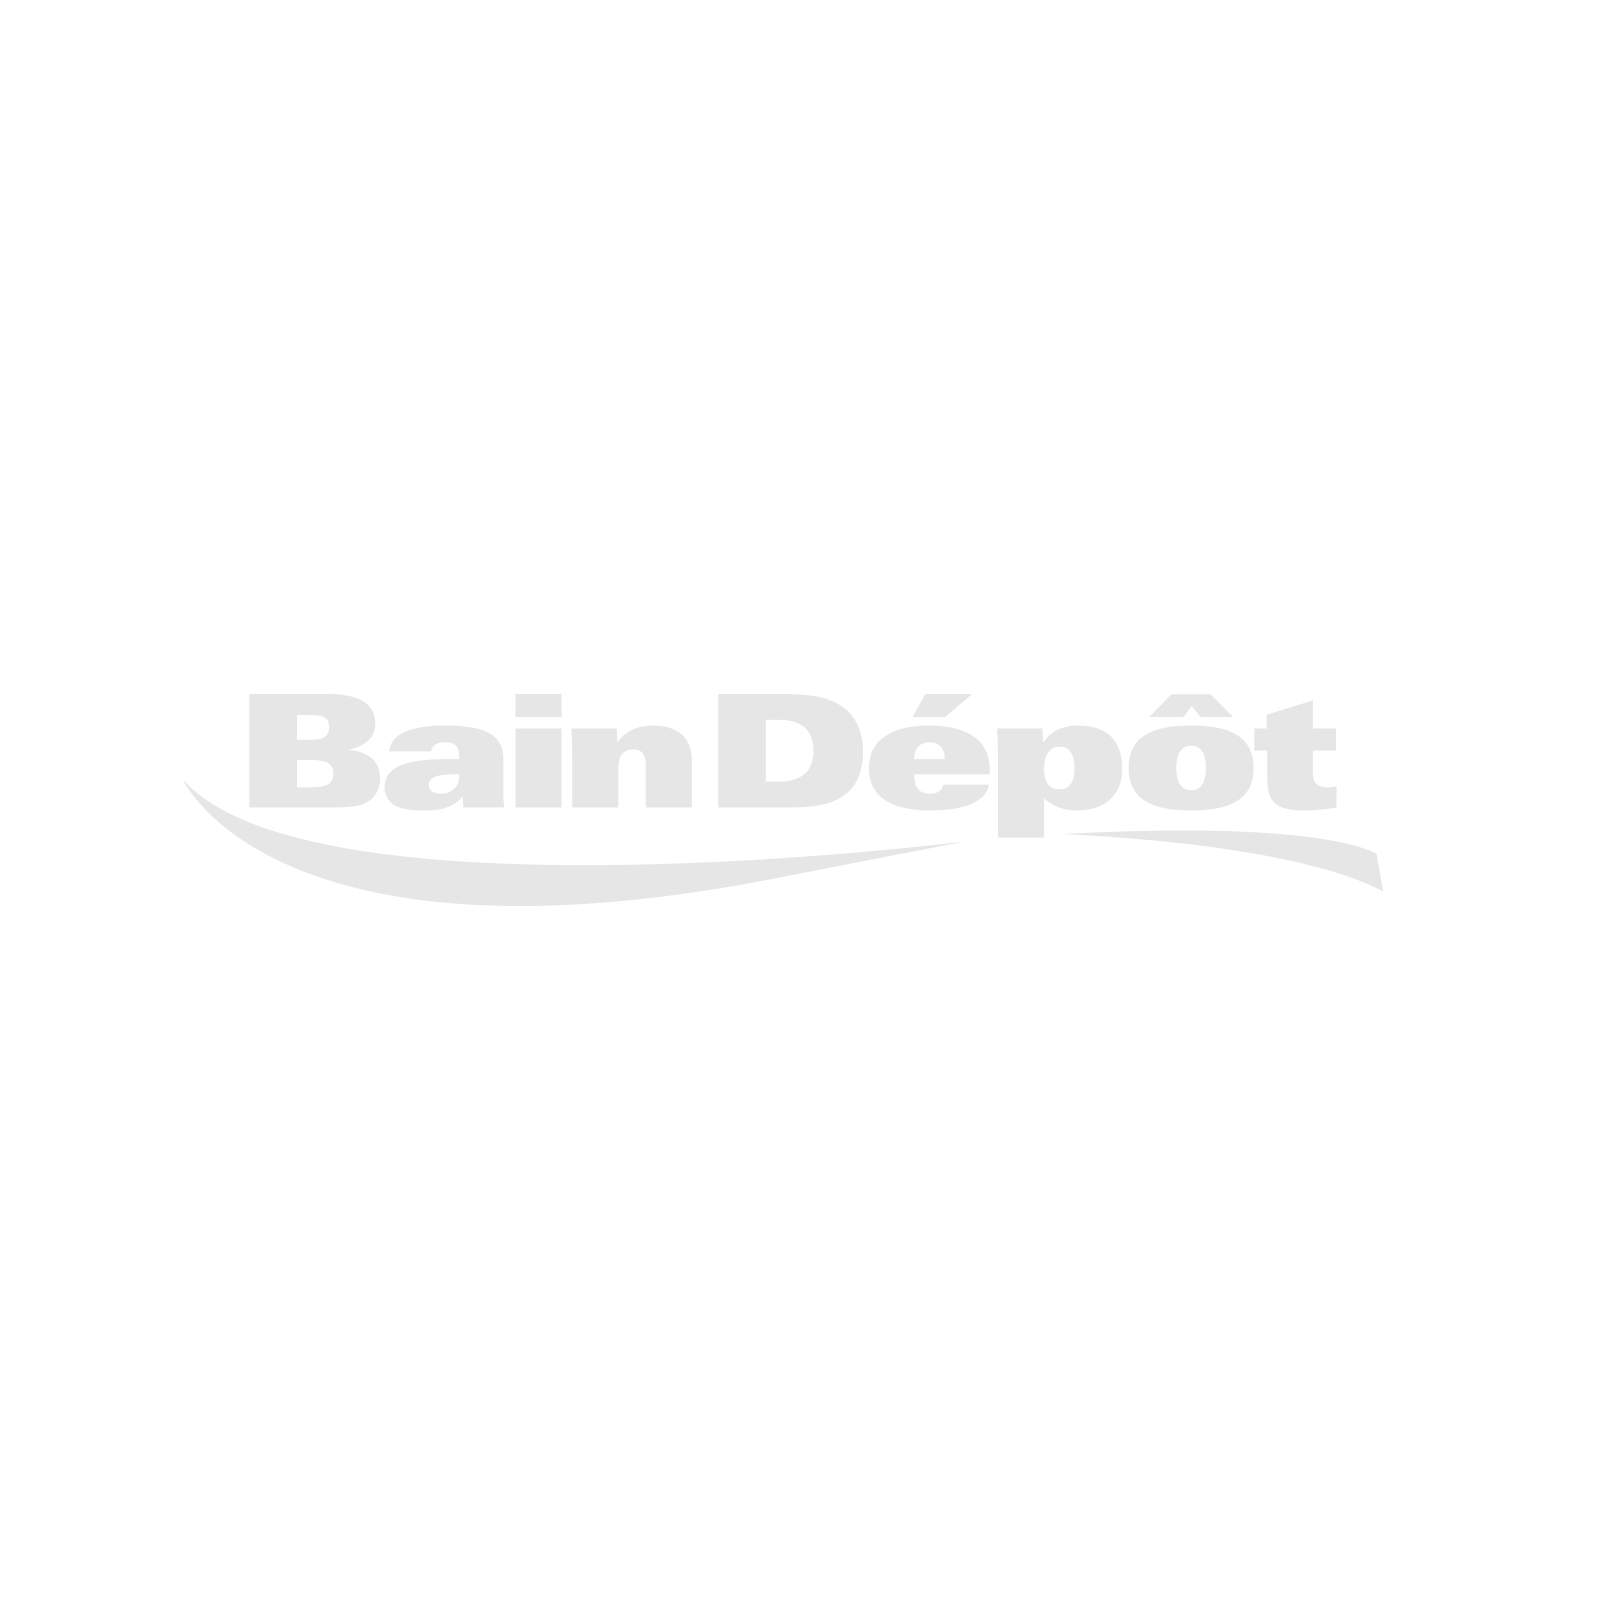 Brushed nickel finish pull-down kitchen faucet